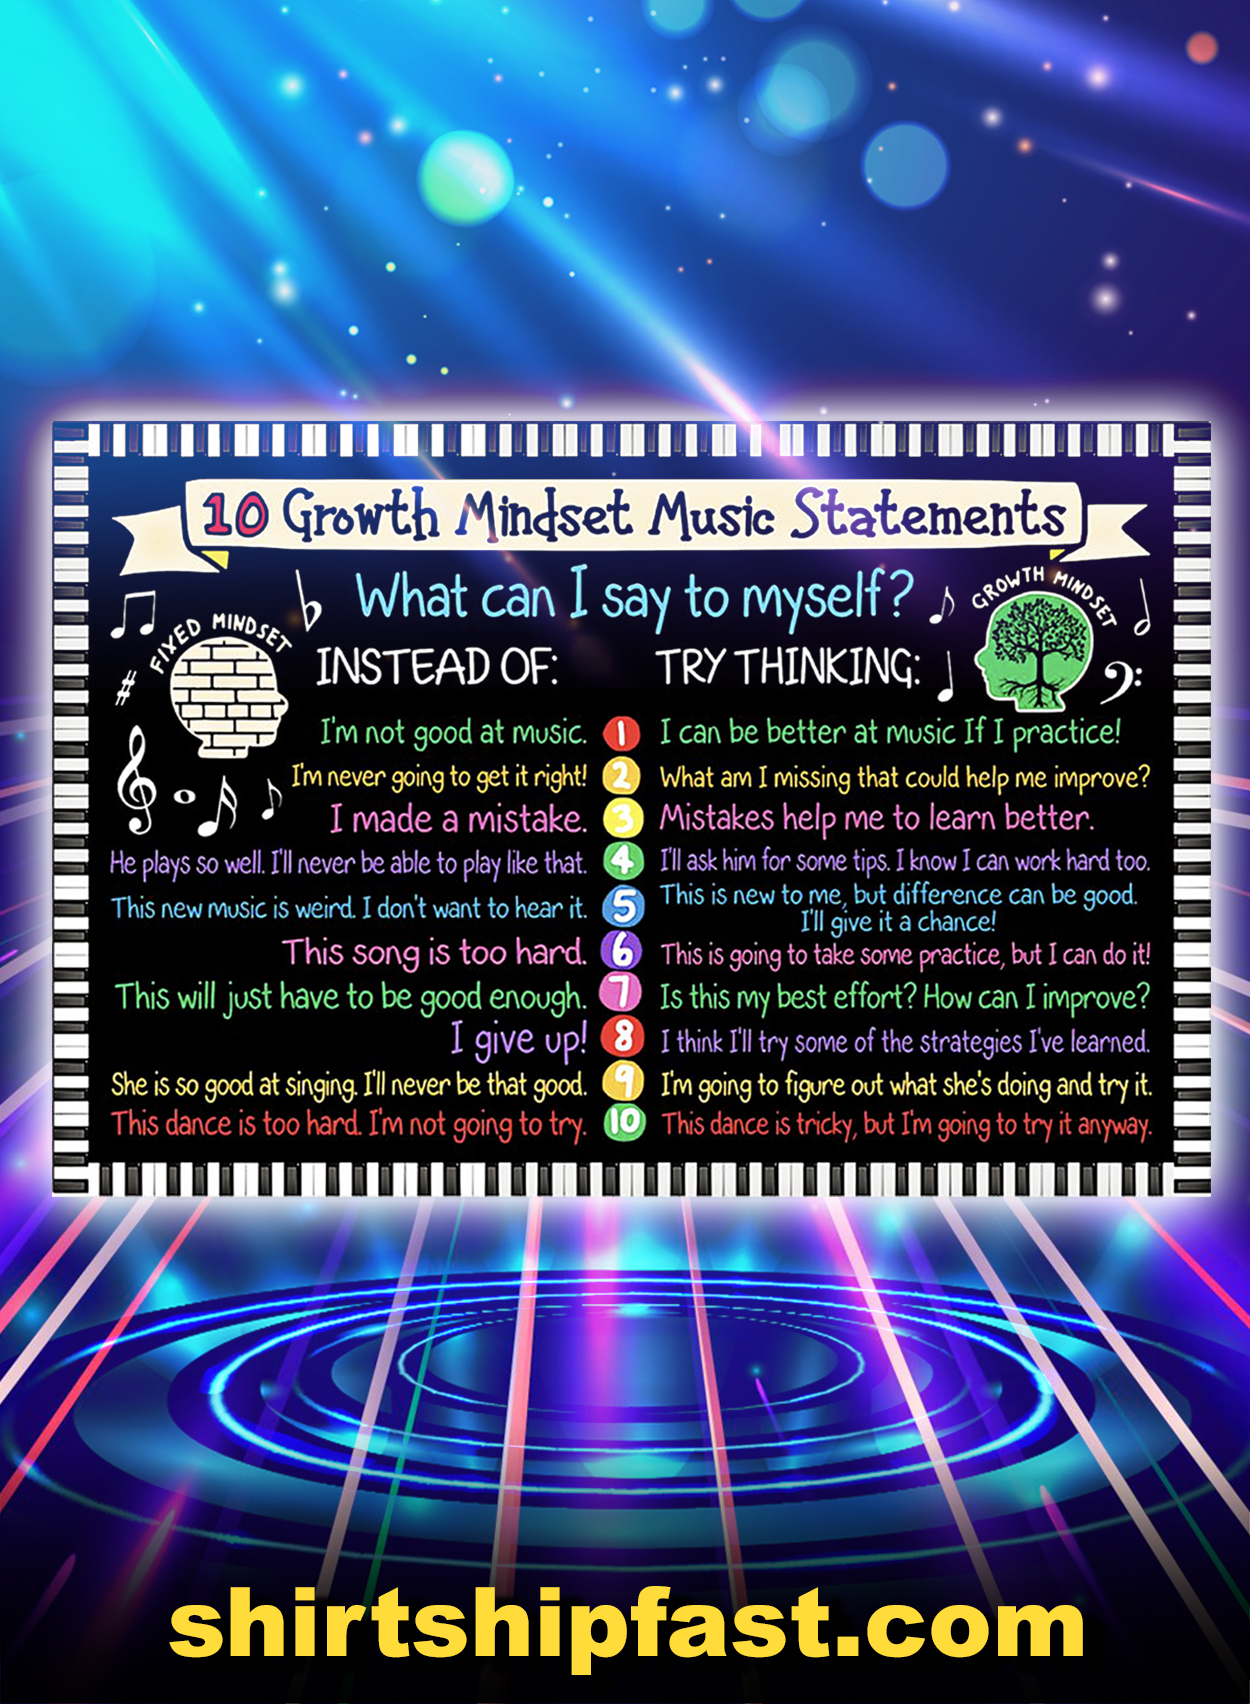 10 growth mindset music statements poster - A2